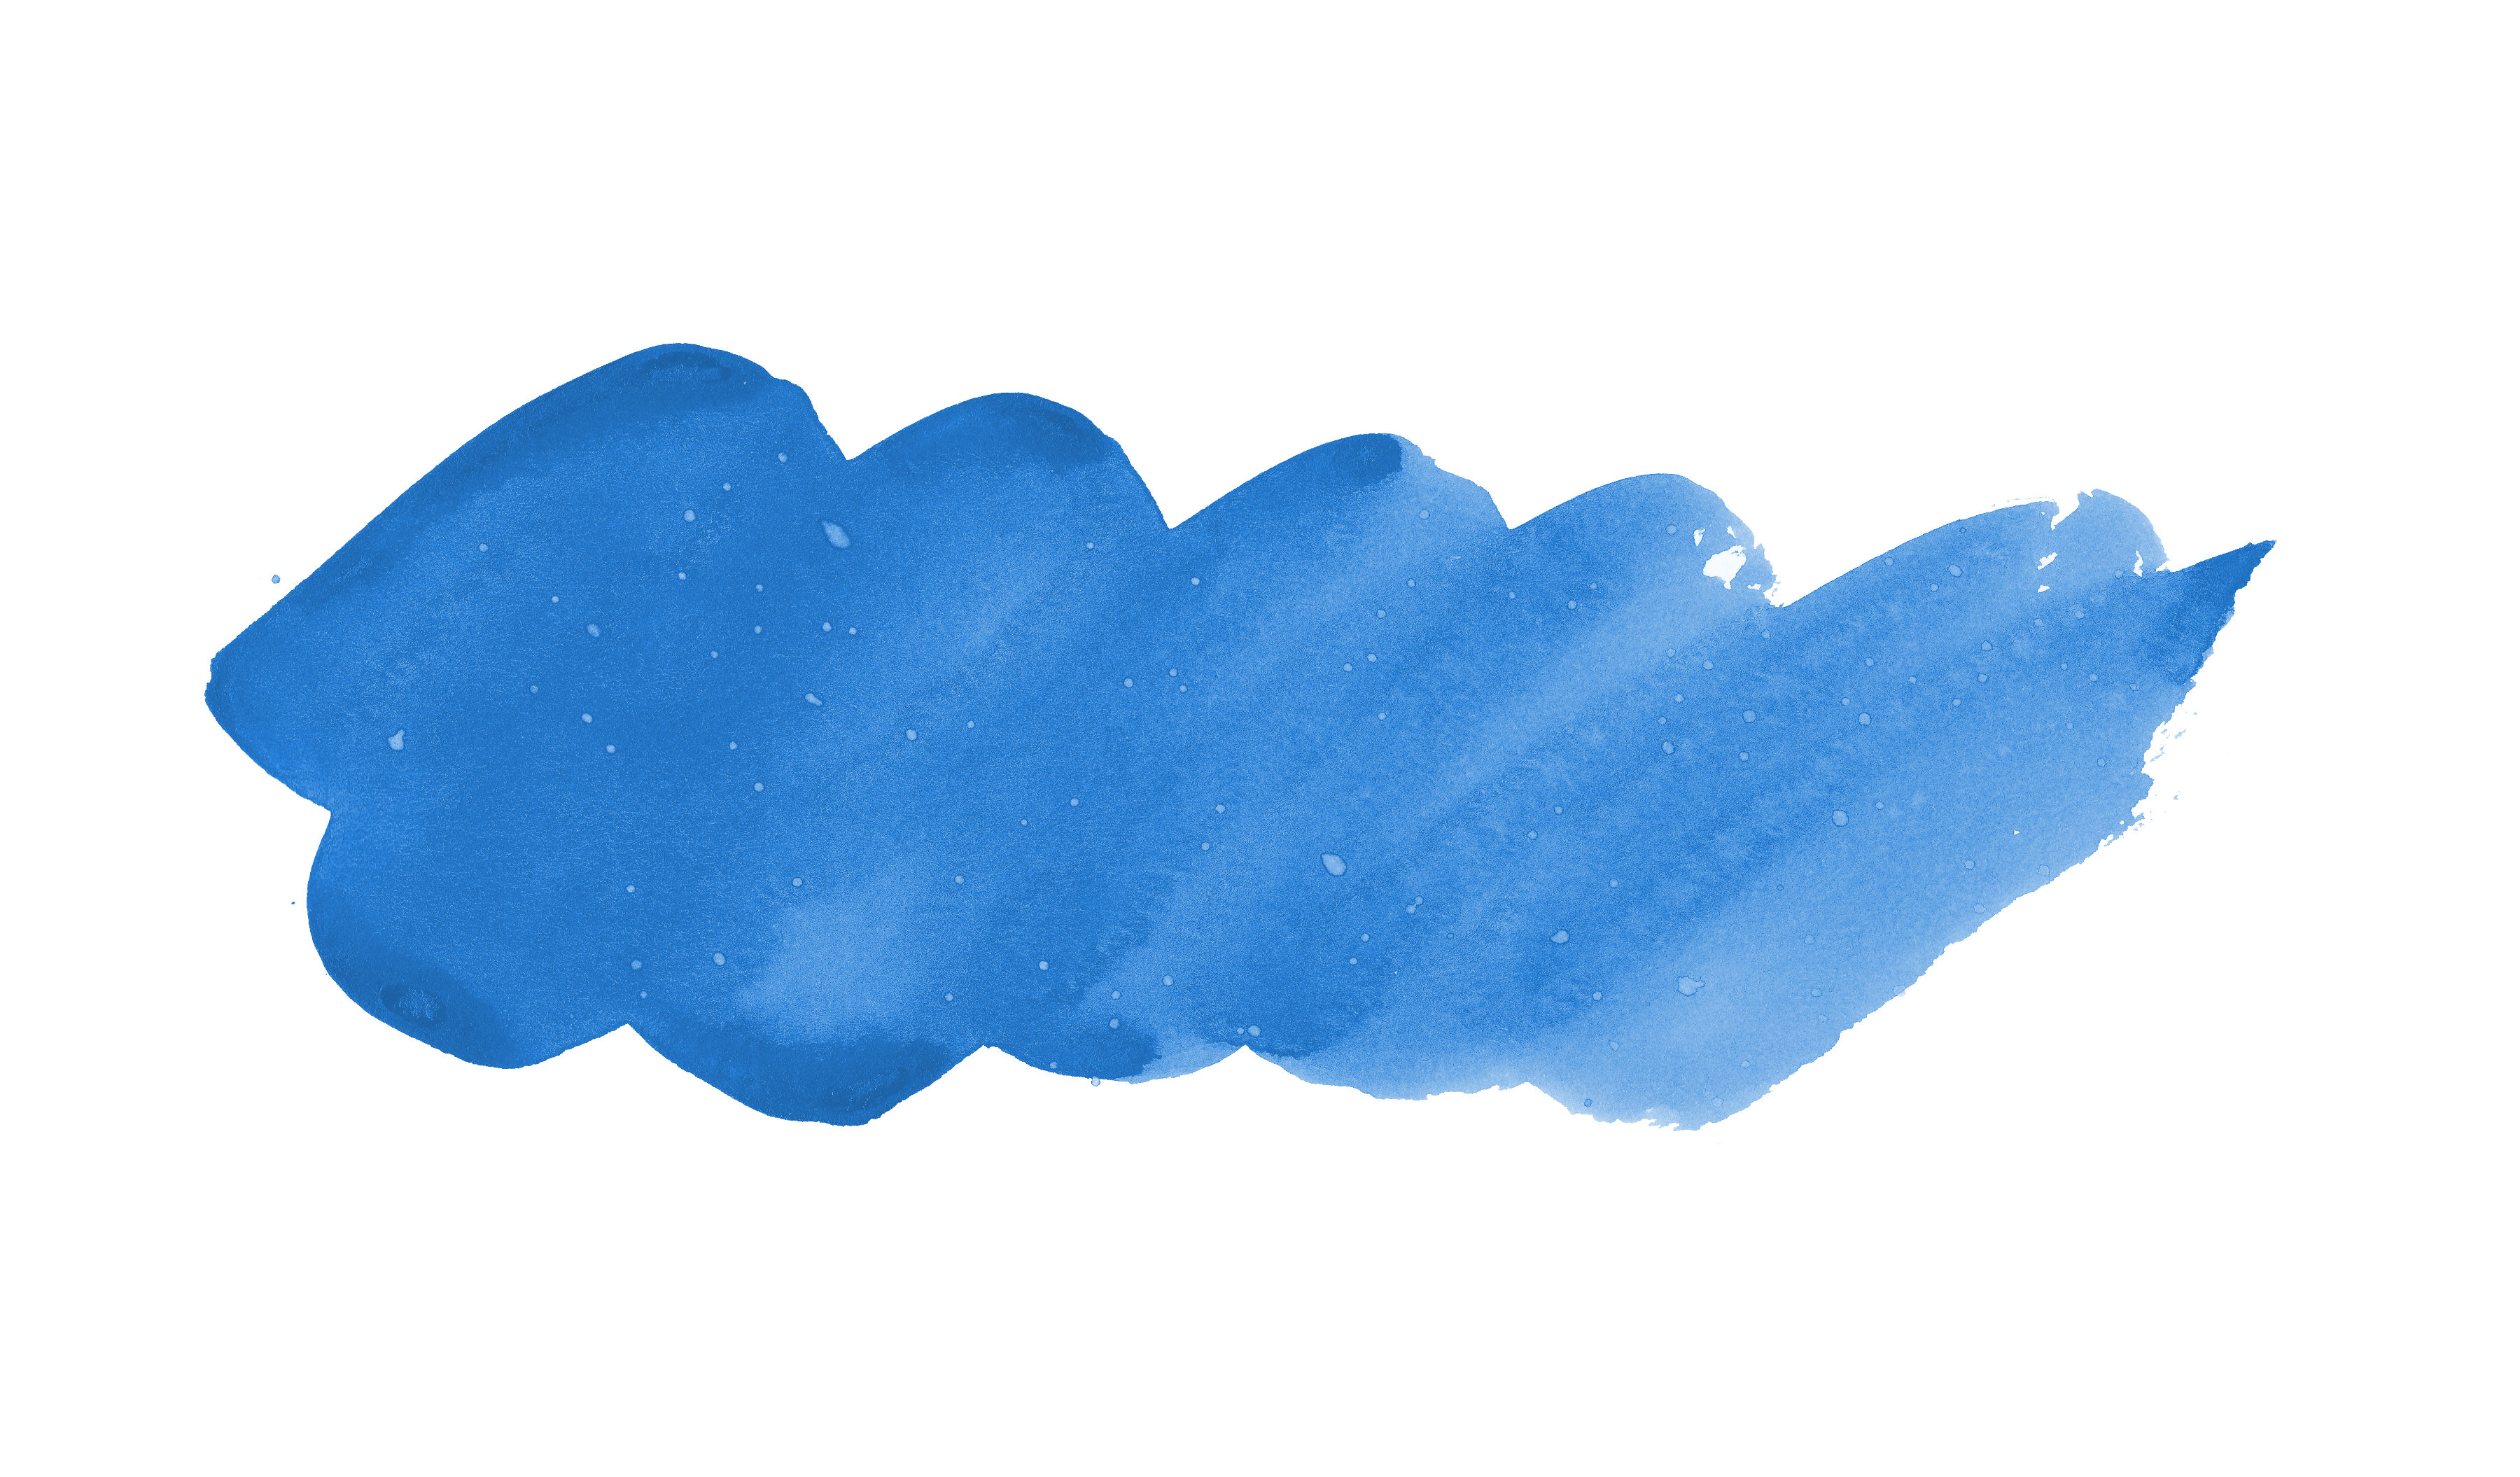 7 Blue Watercolor Banner (JPG) | OnlyGFX.com